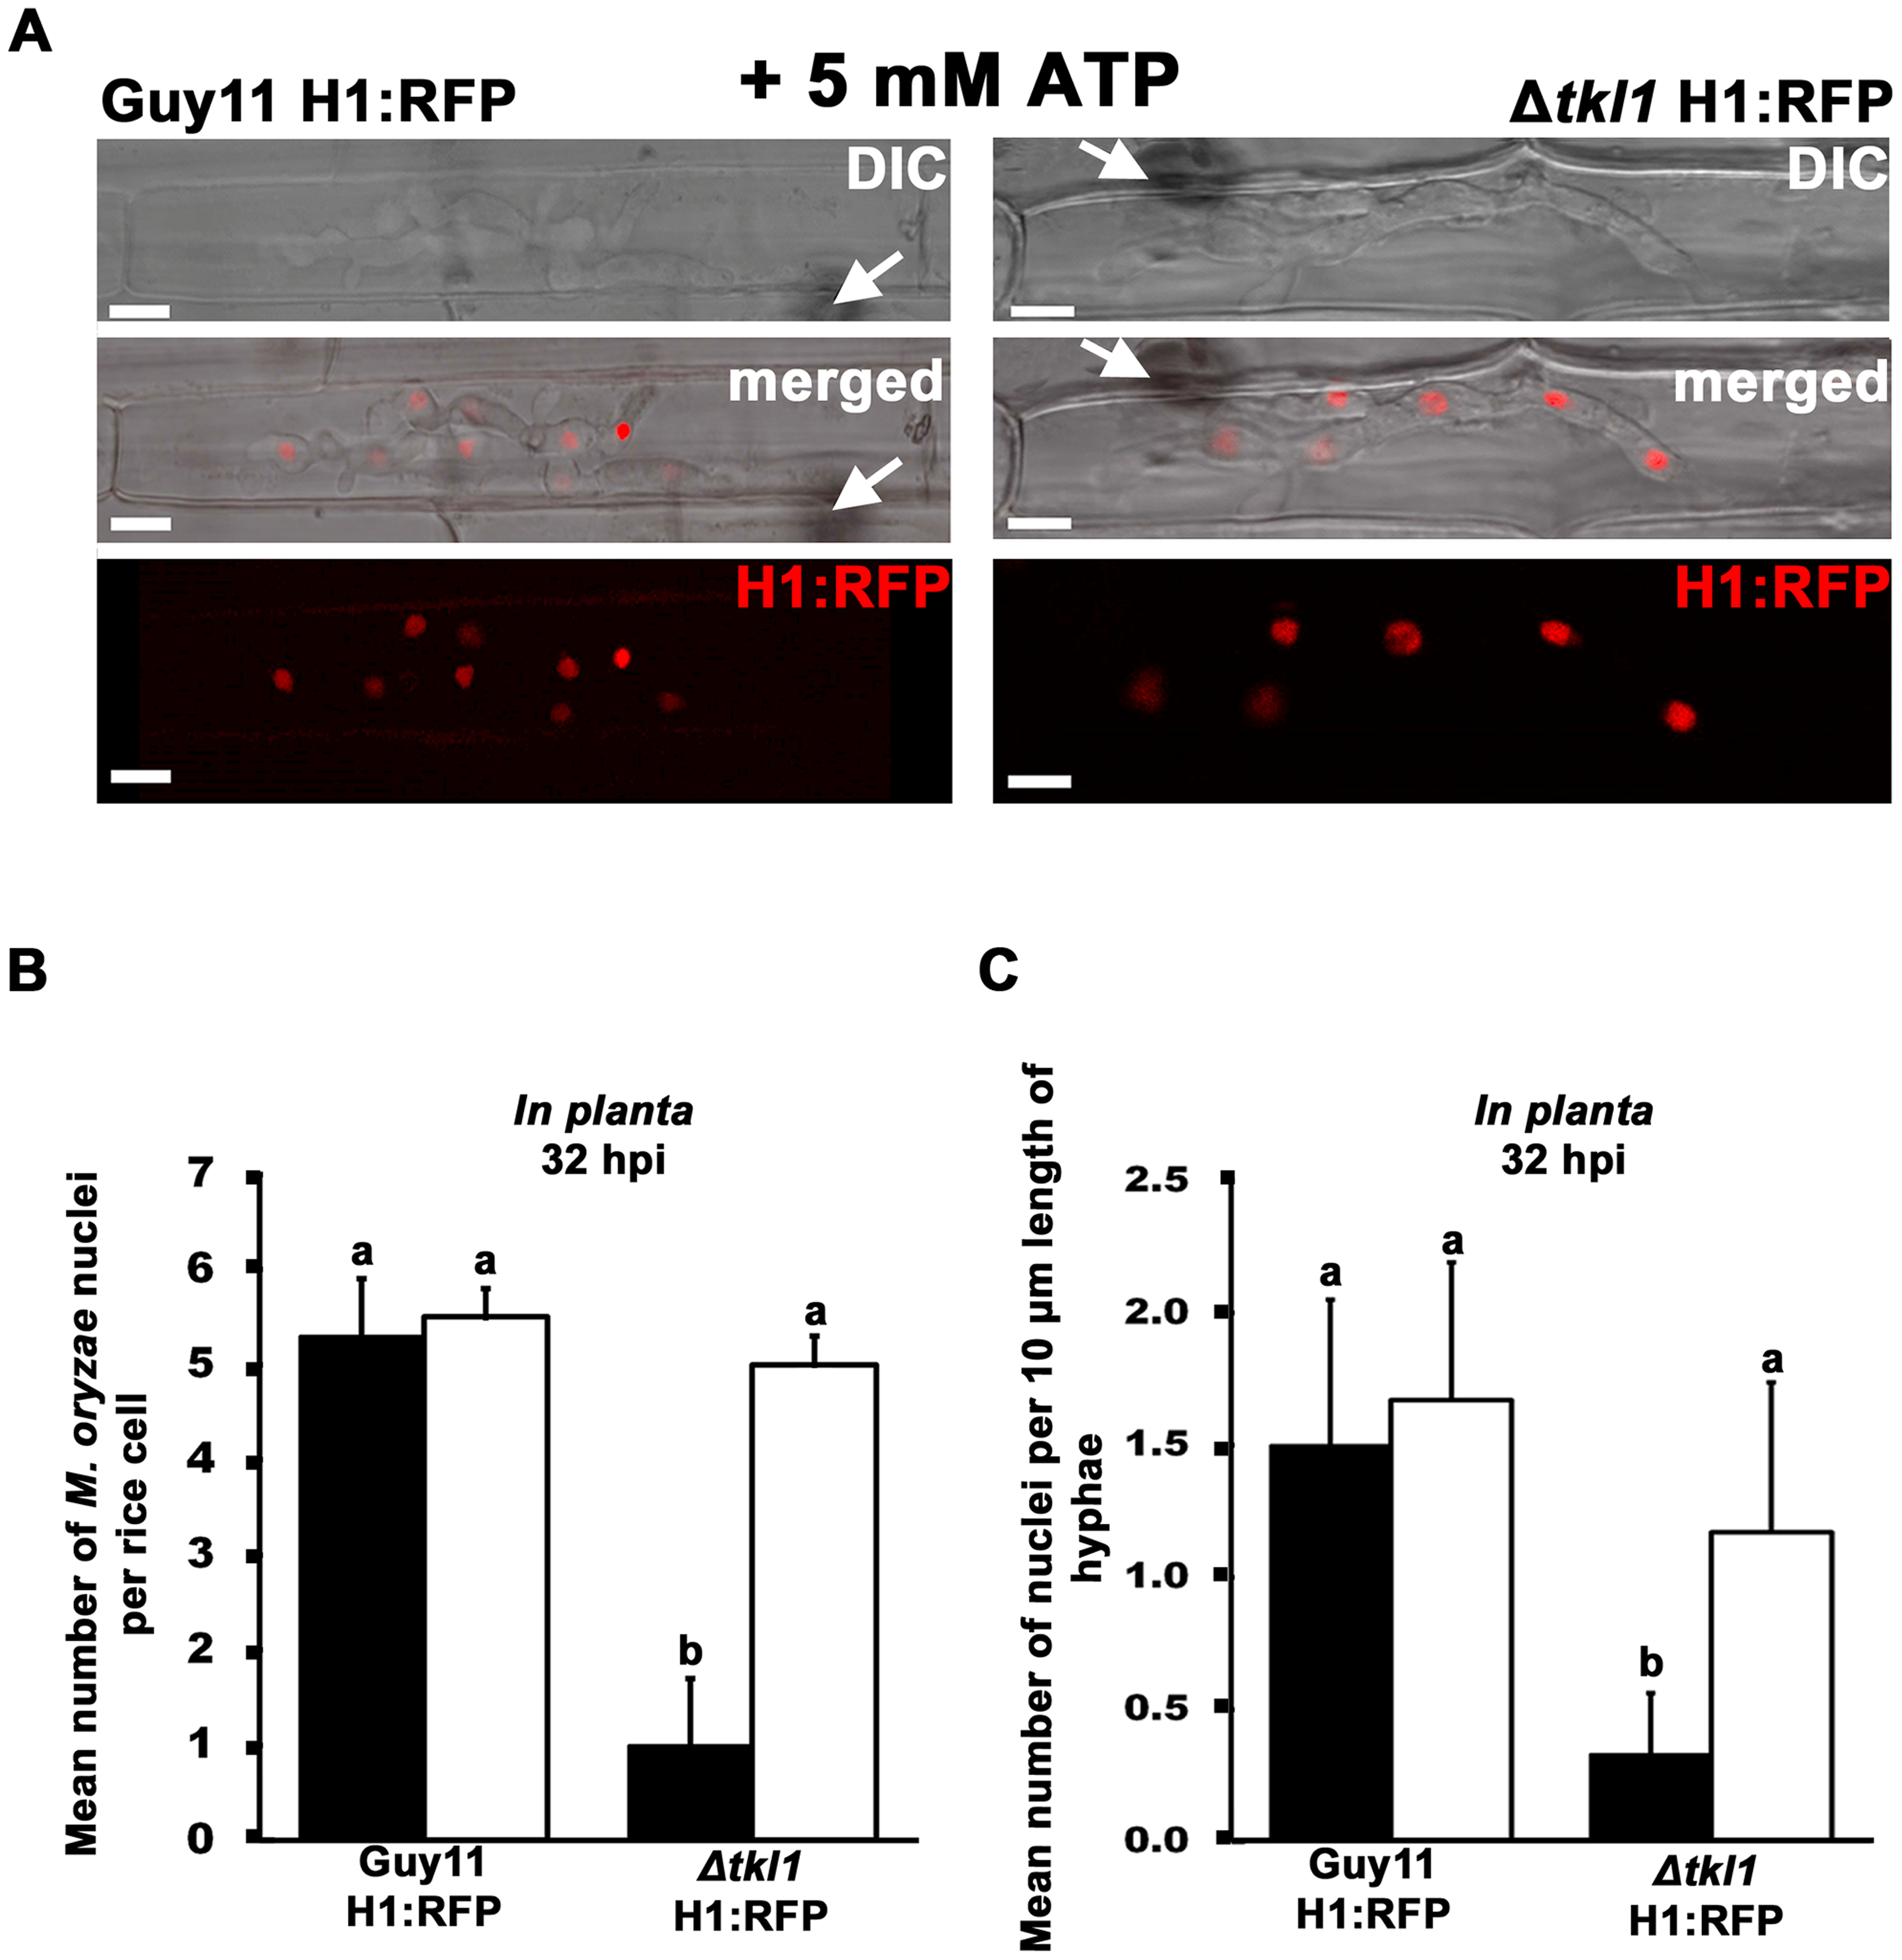 Mitotic delay is remediated <i>in planta</i> by treating Δ<i>tkl1</i> H1:RFP mutant strains with exogenous ATP.